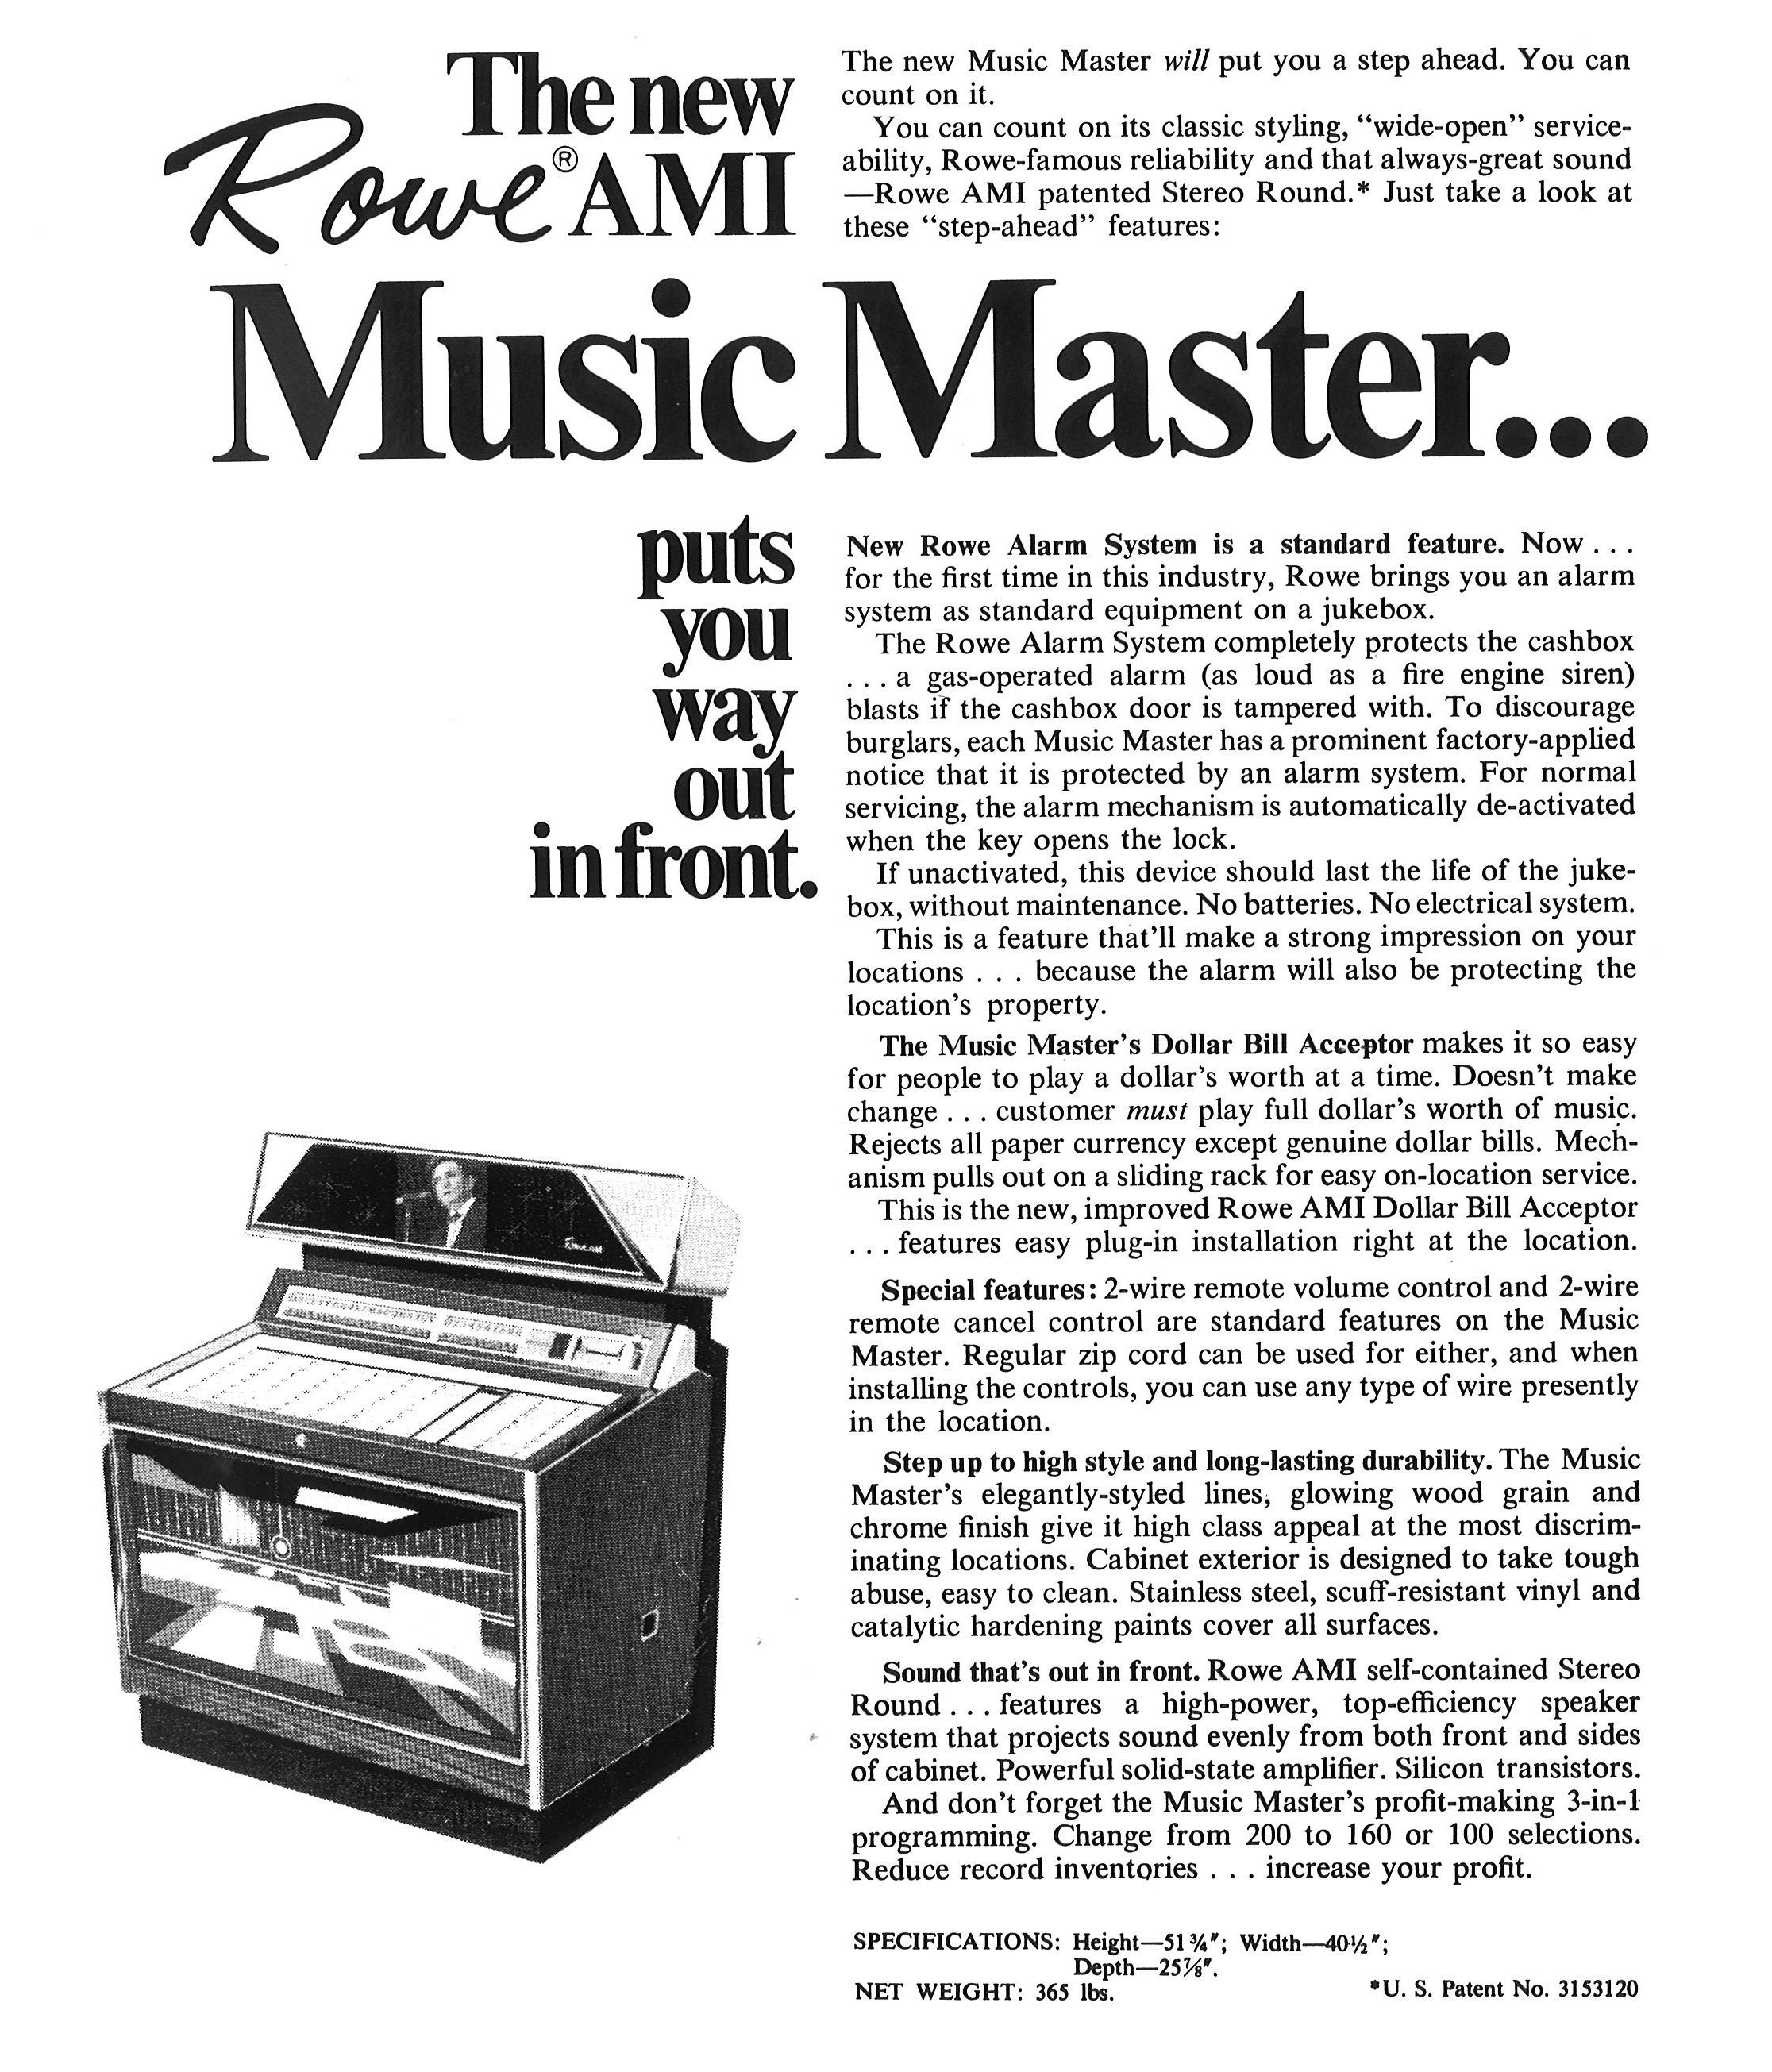 1968,Rowe-AMI's Music Master sell sheet: